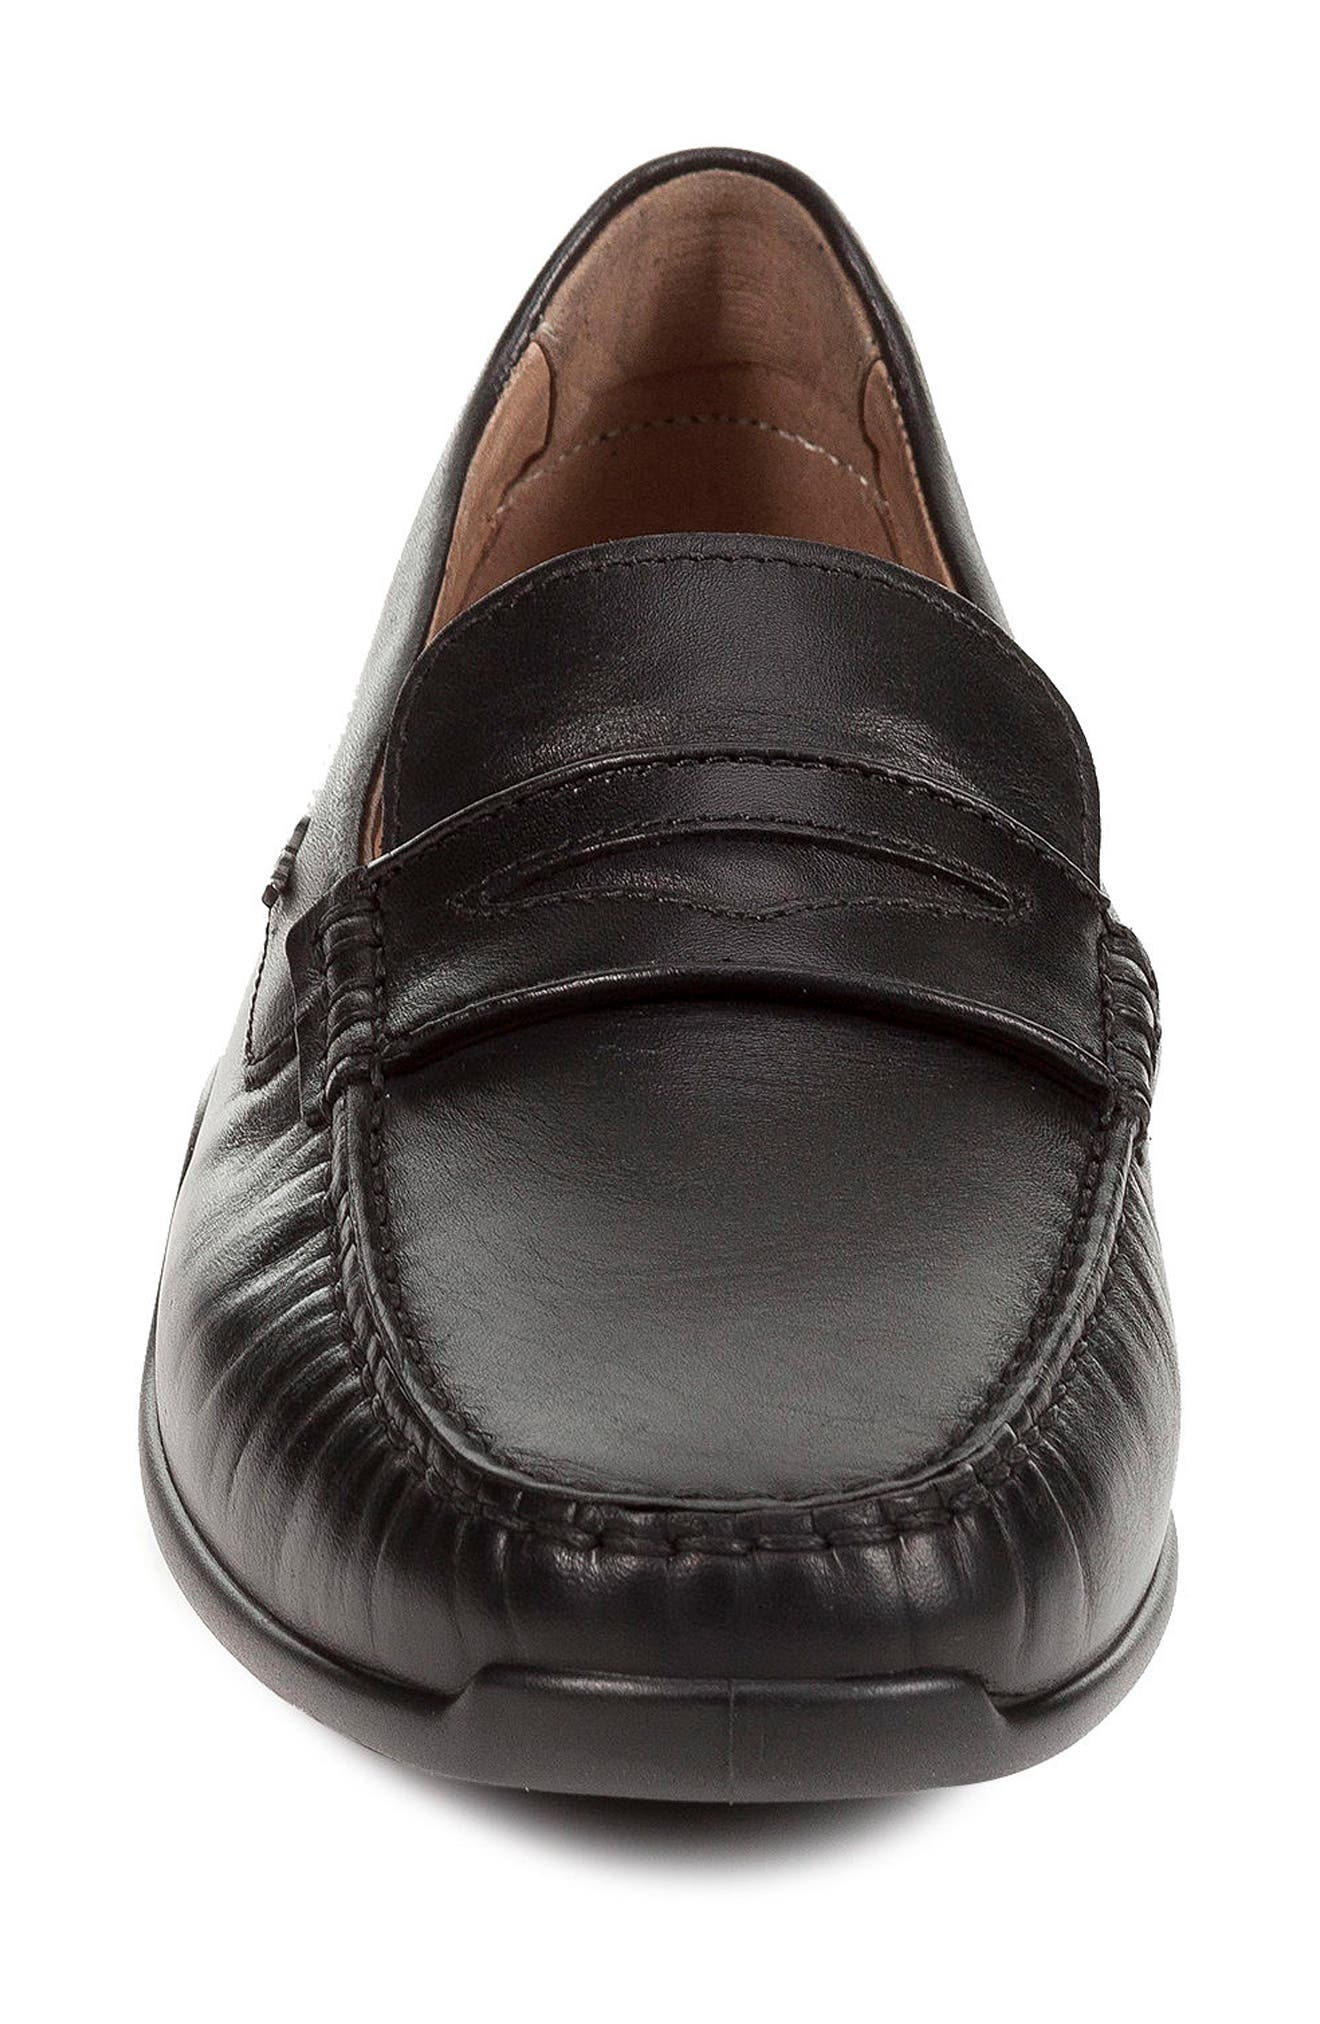 Xense Penny Loafer,                             Alternate thumbnail 3, color,                             Black Leather